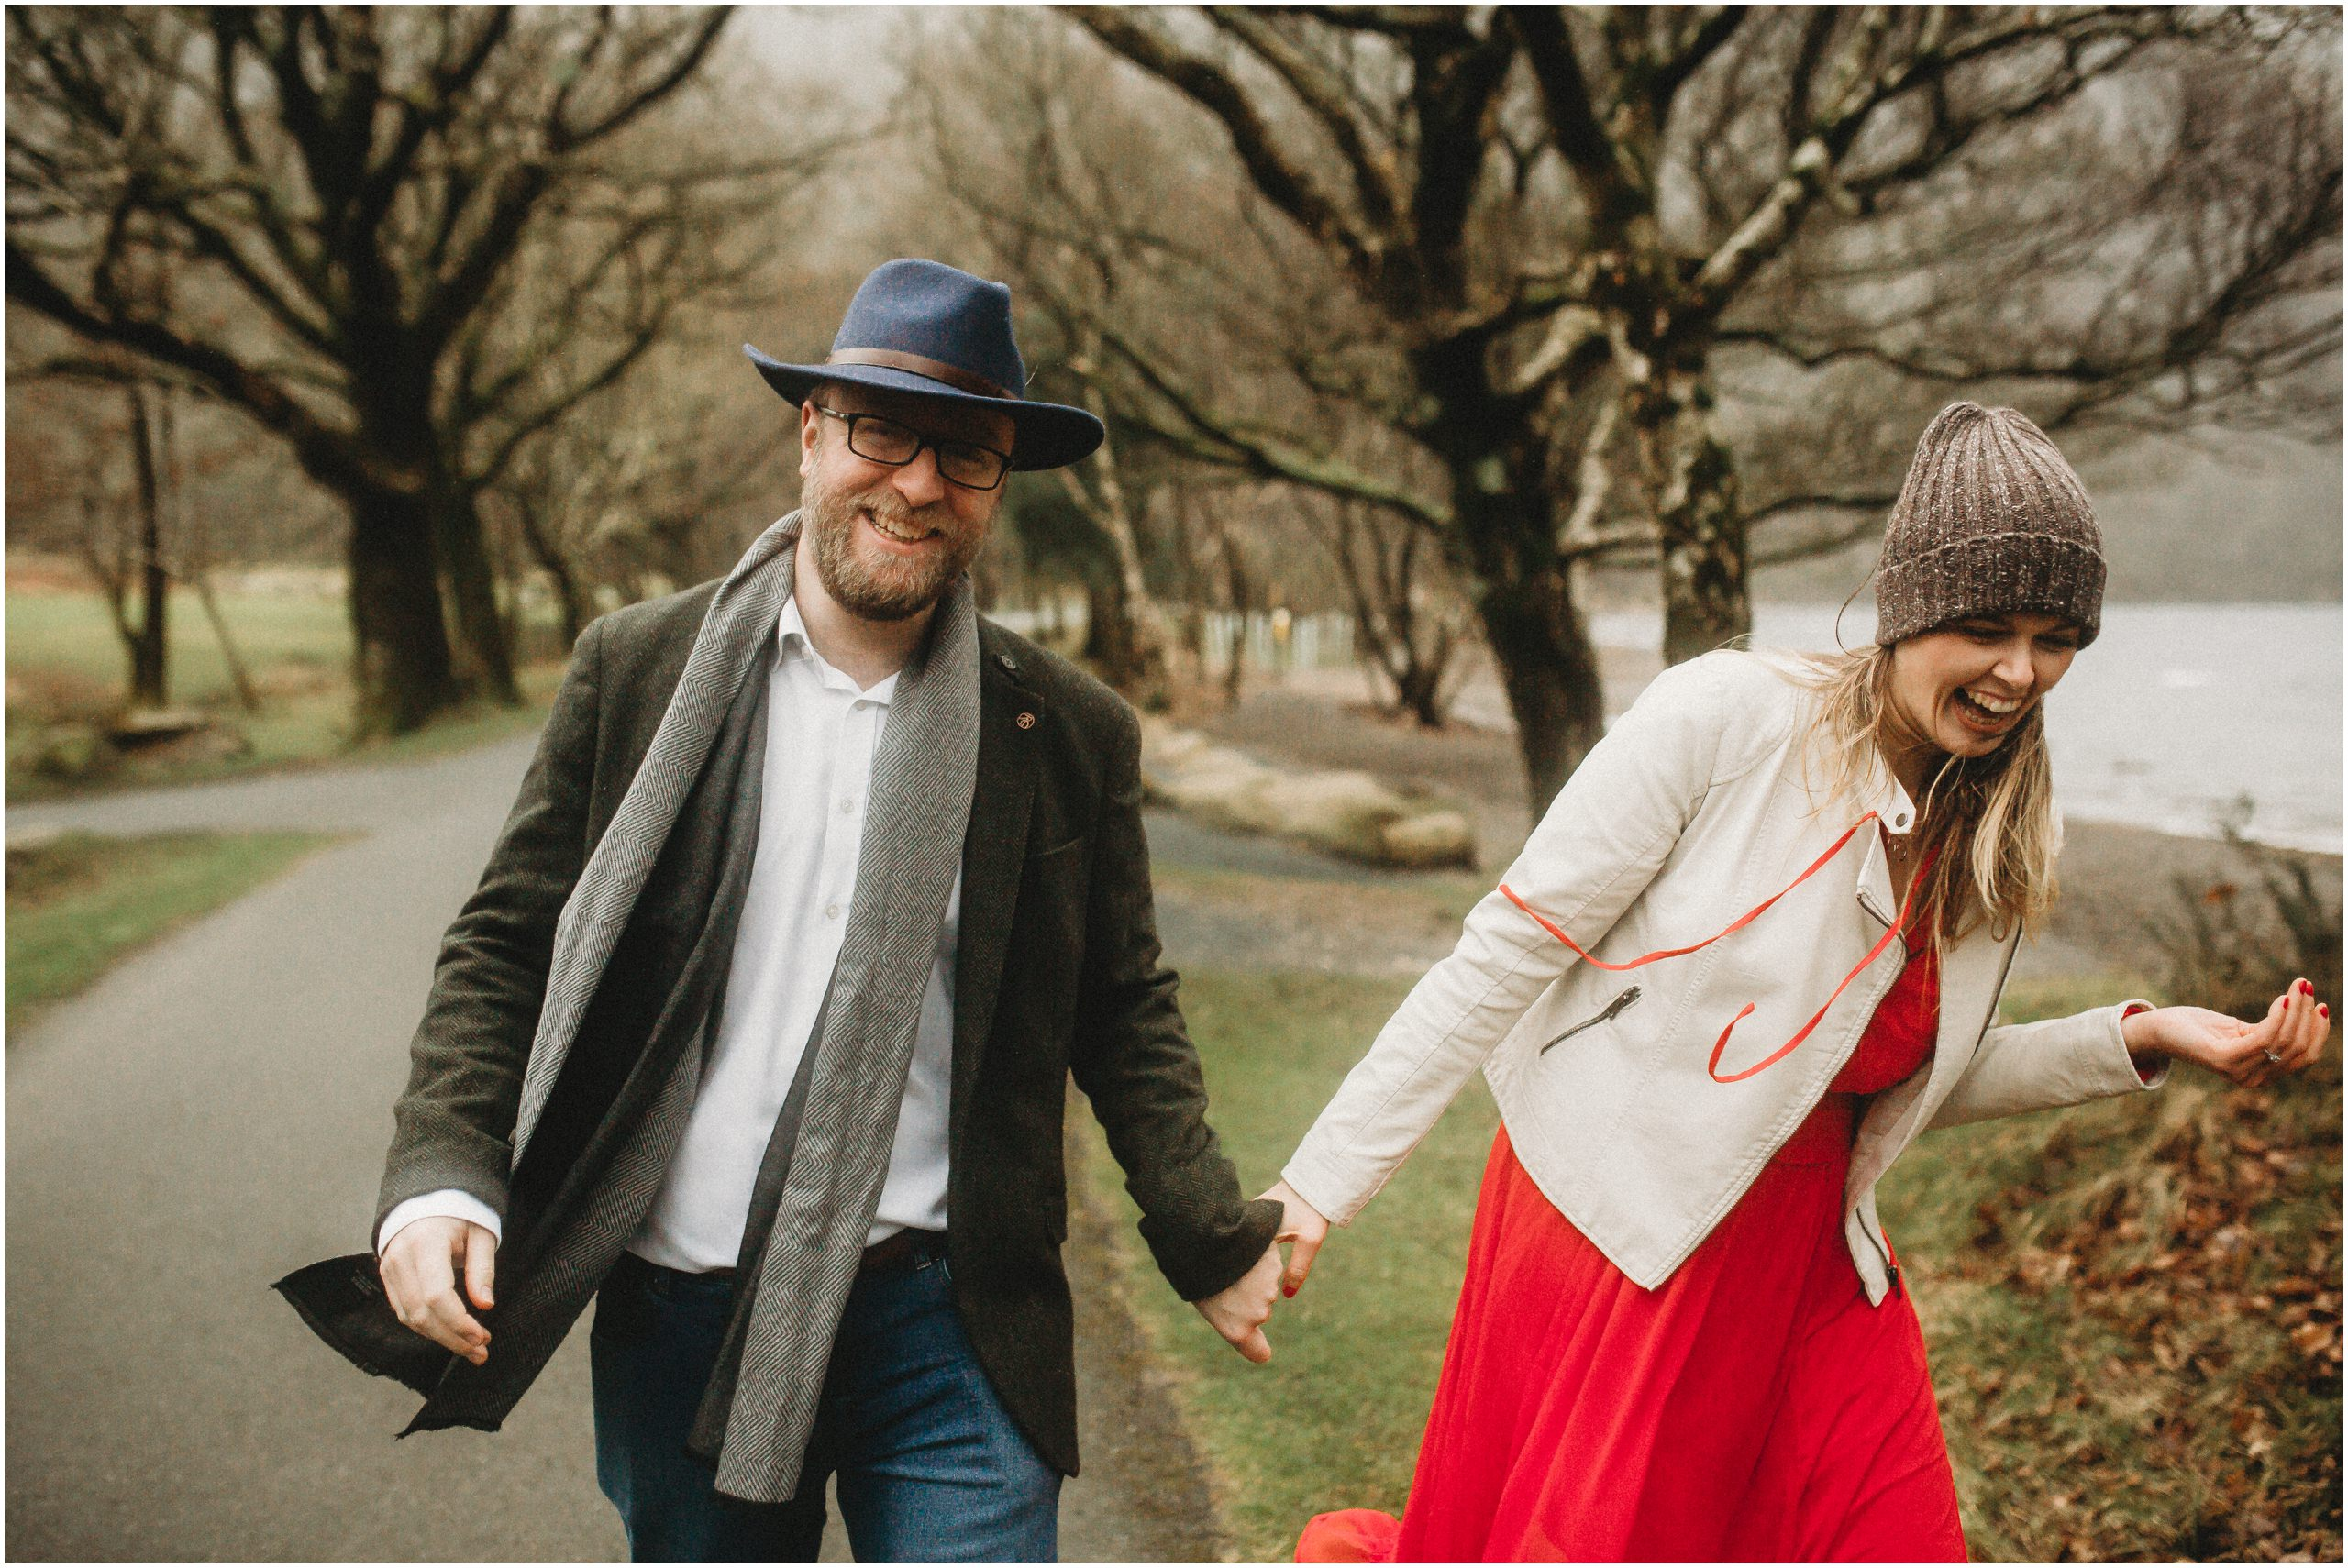 Johnny Corcoran Photography glendalough wicklow prewedding 0012 - Fun and Relaxed wedding and elopement photography in Ireland, perfect for adventurous and outdoorsy couples